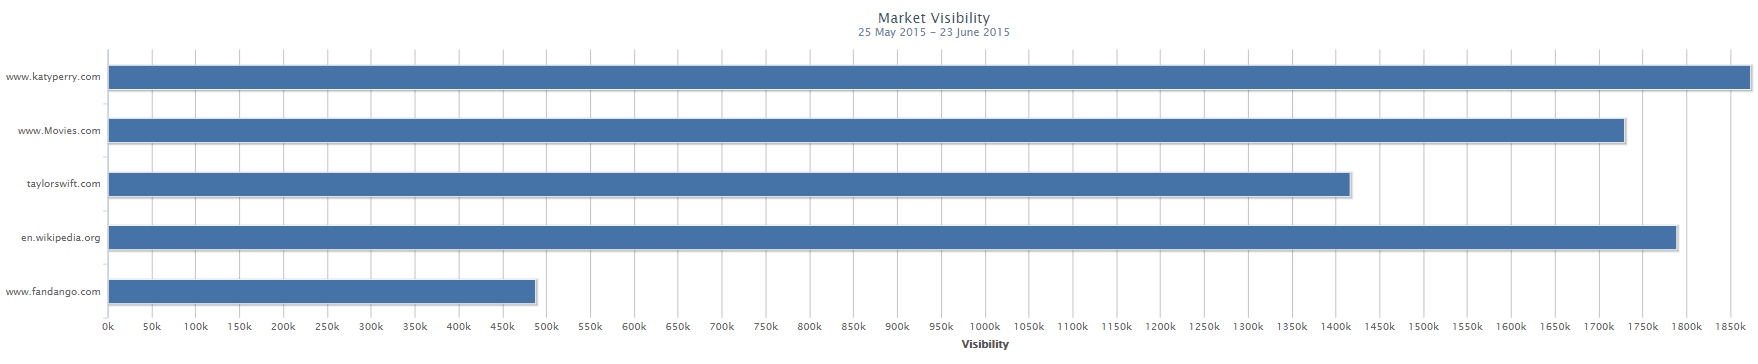 Calculating total Market Visibility